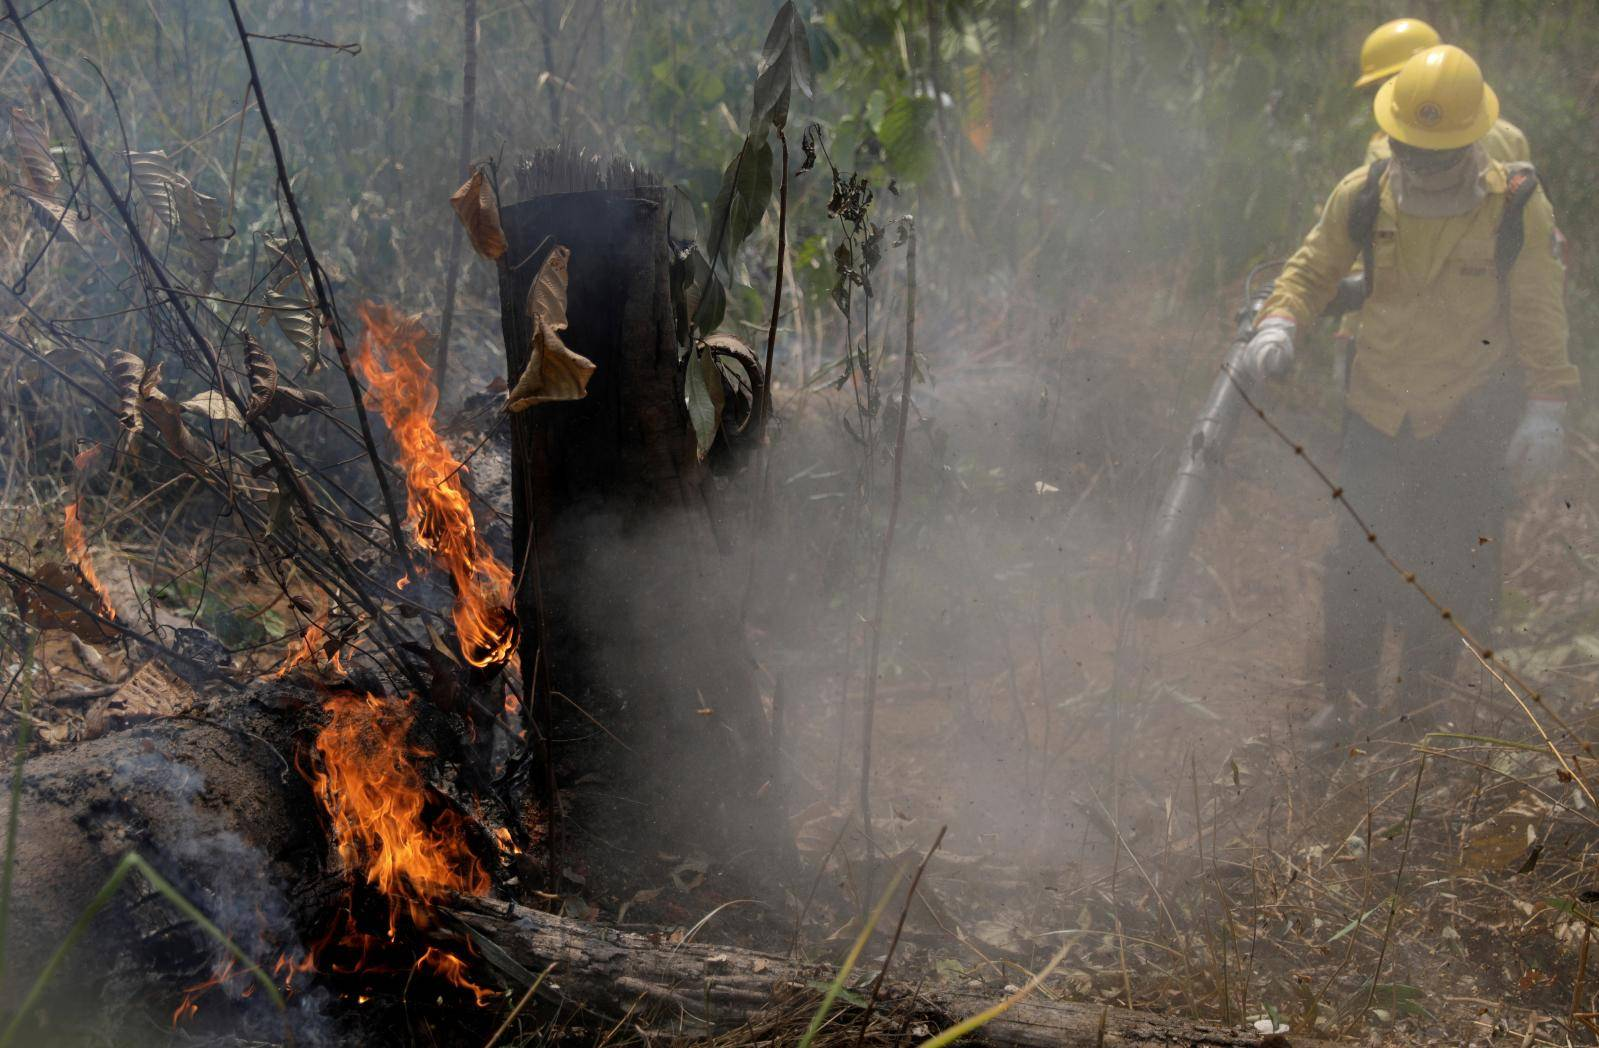 Firefighters extinguish a fire in Amazon jungle in Porto Velho